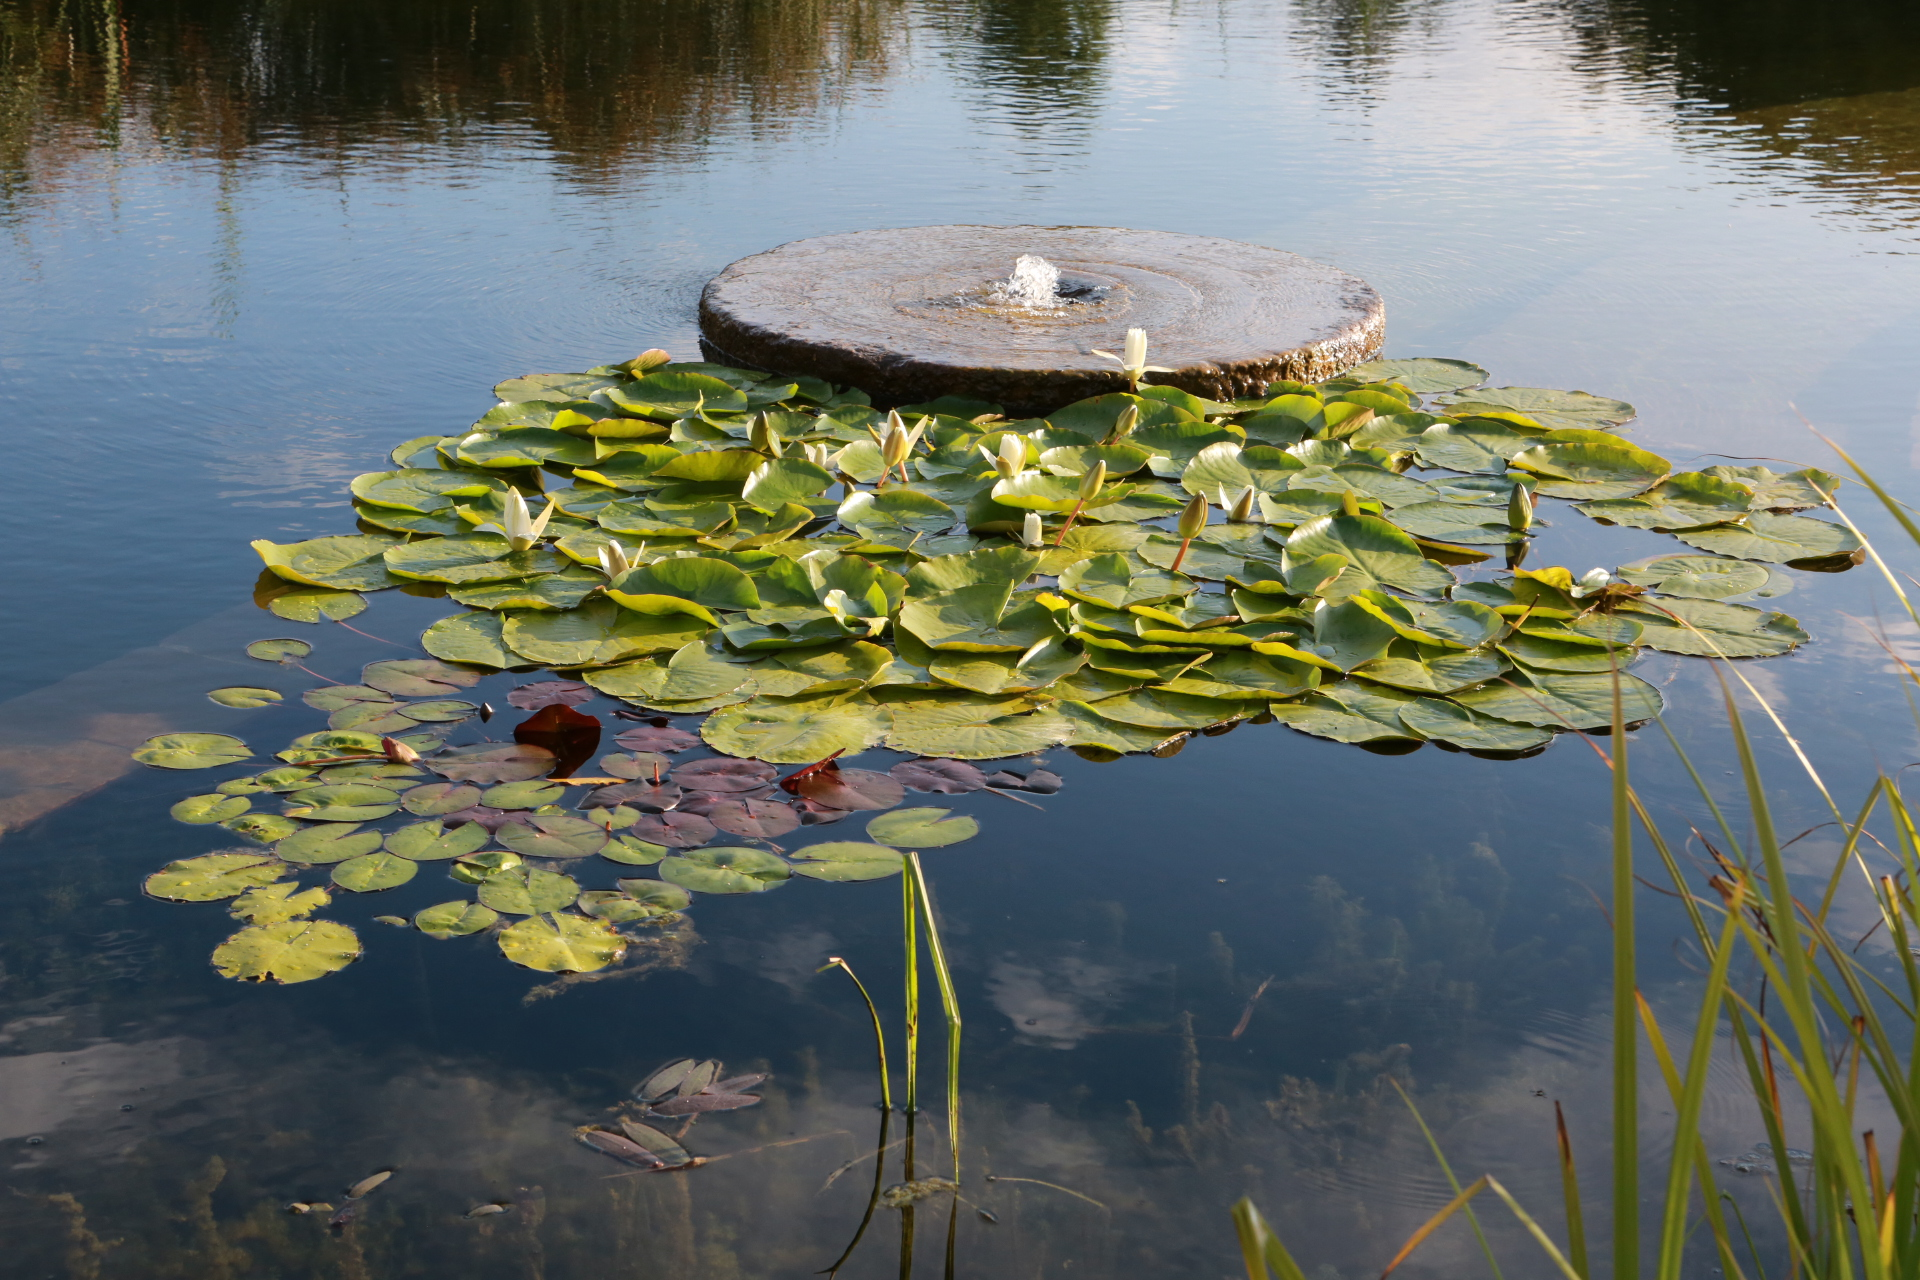 millstone fountain in natural pool